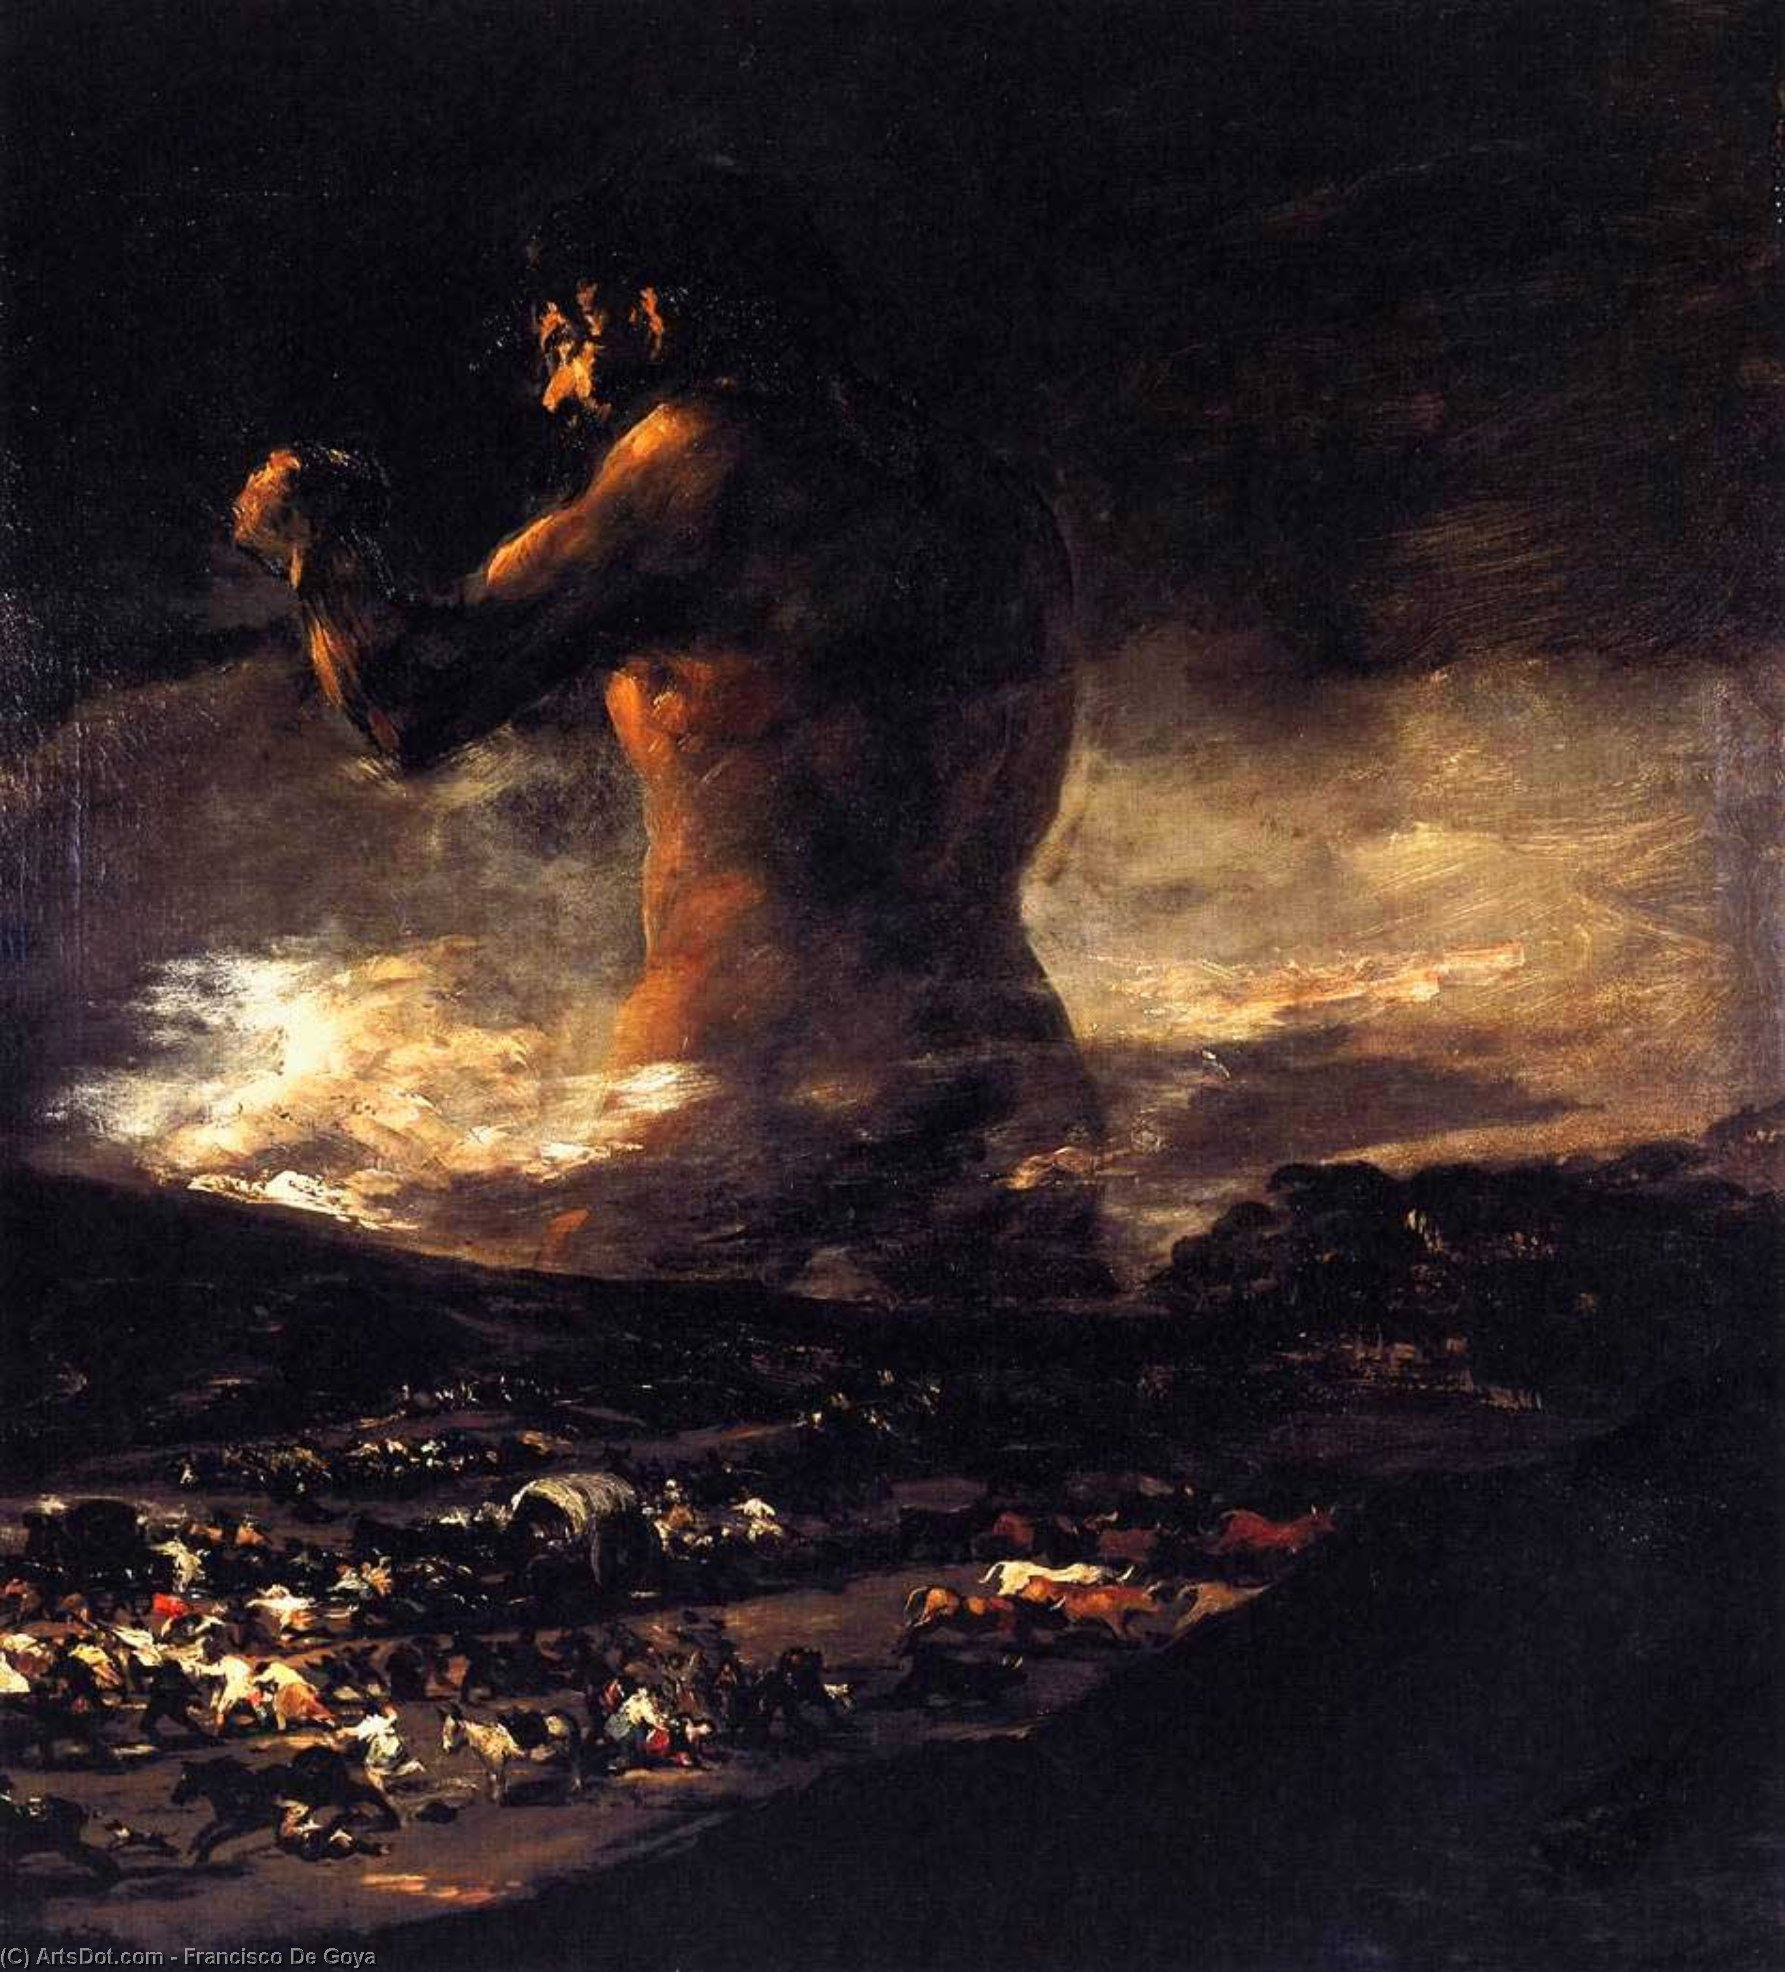 Wikioo.org - The Encyclopedia of Fine Arts - Painting, Artwork by Francisco De Goya - The Colossus